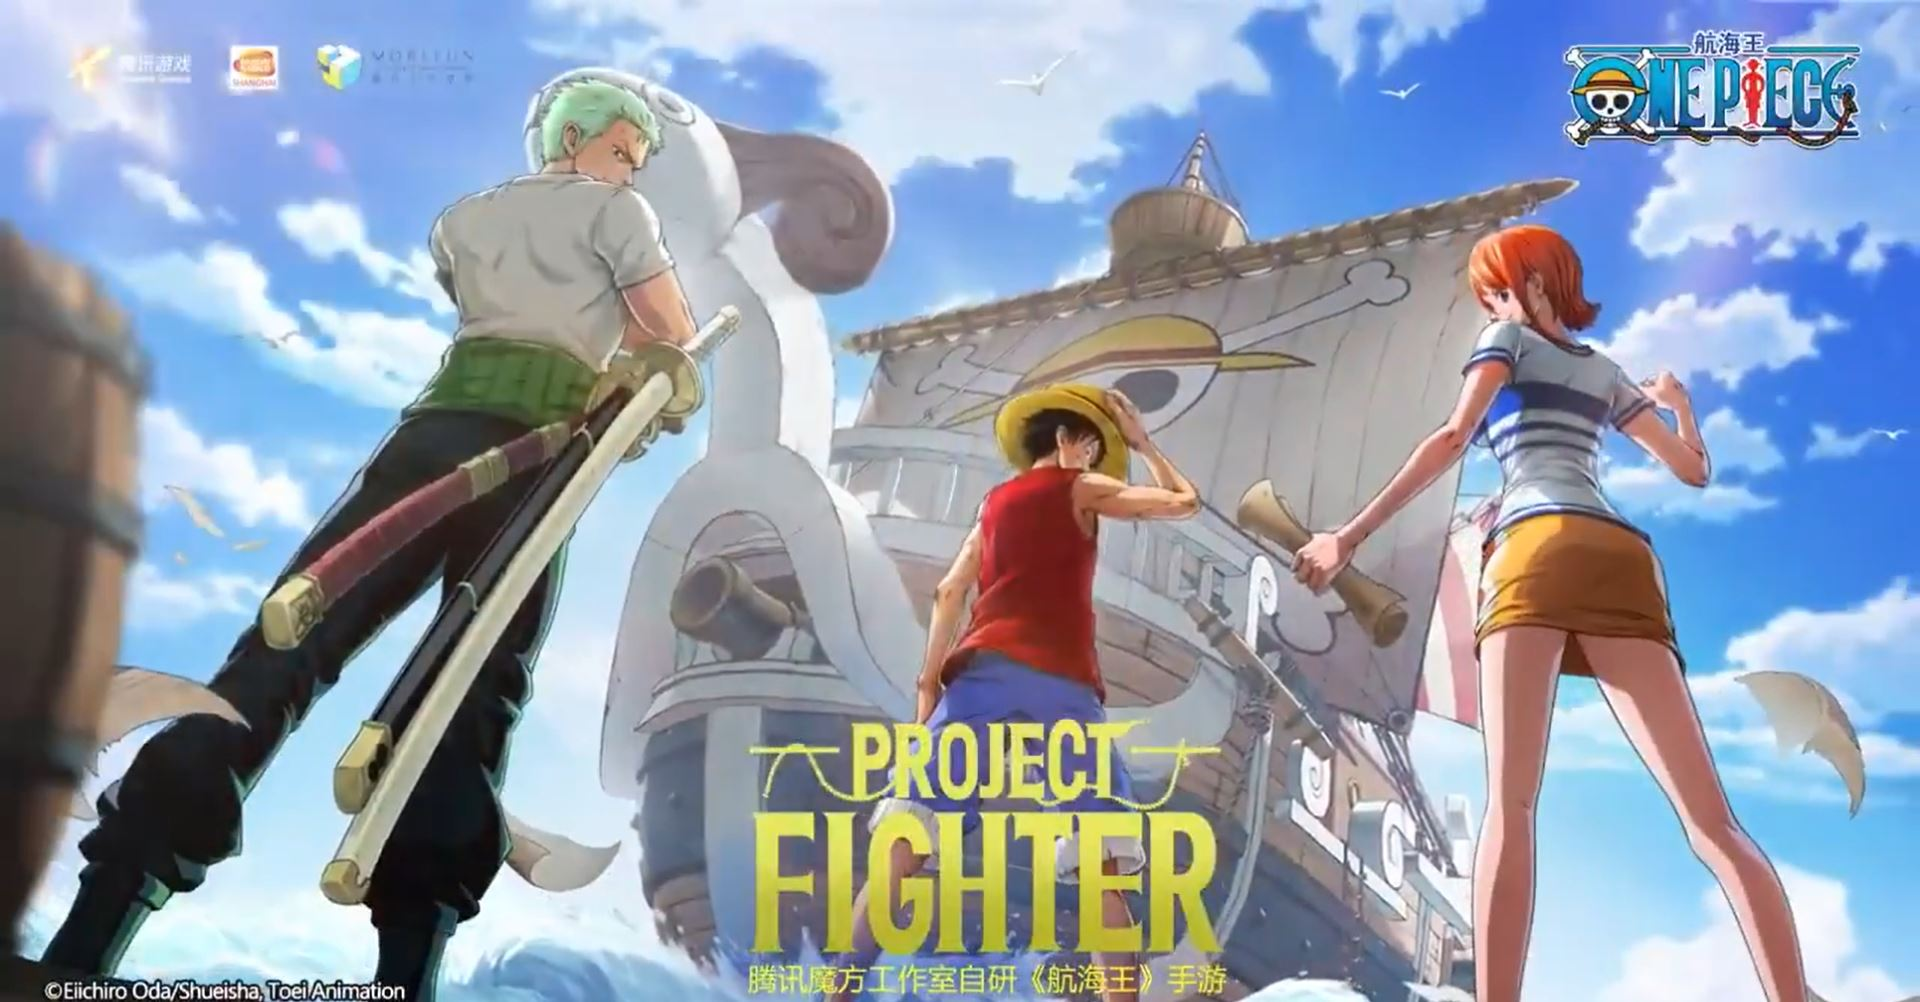 Annonce One Piece : Project fighter